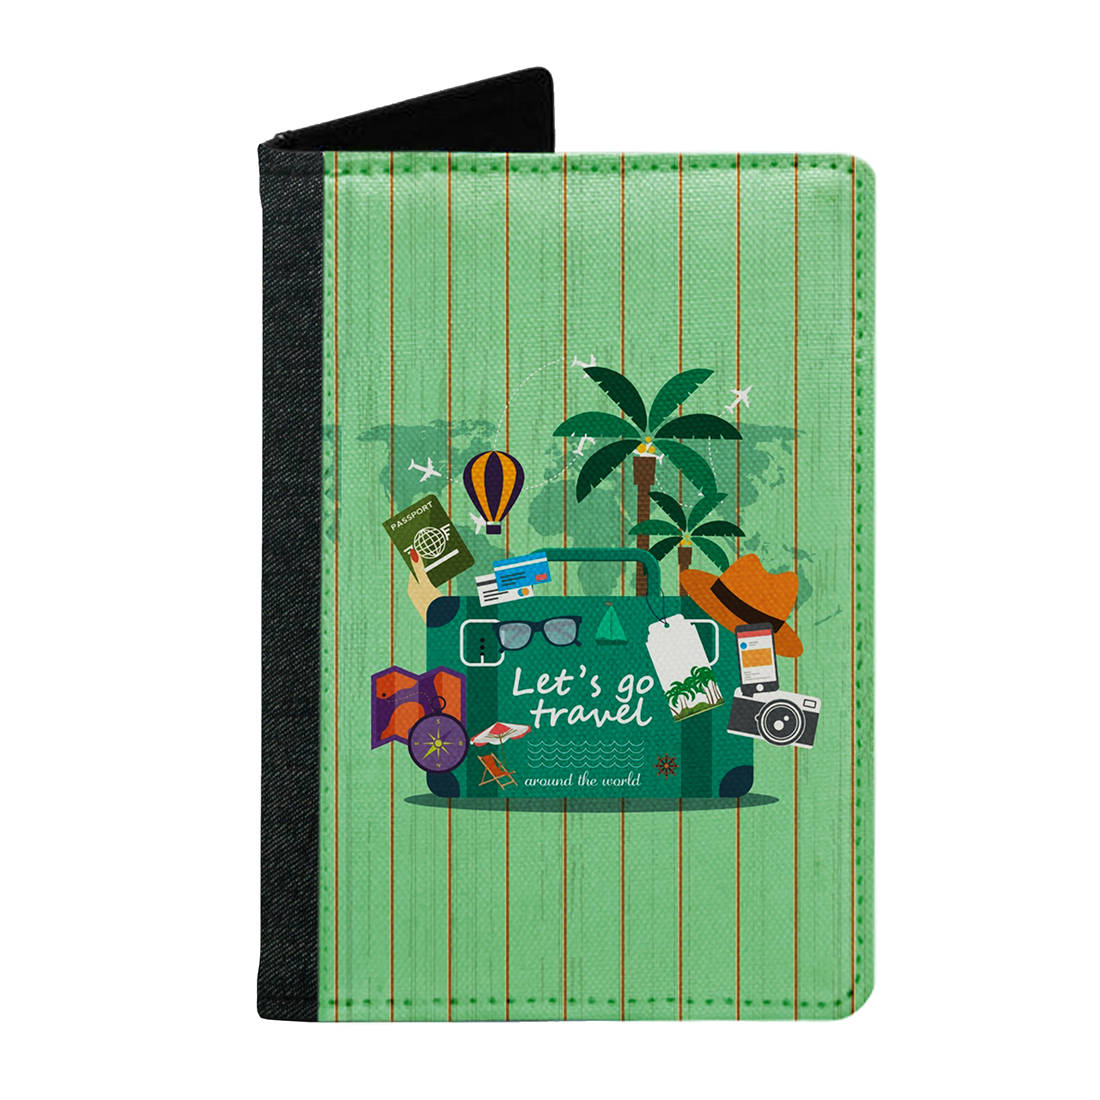 Passport Cover Passport Holder - For Men and Women Lets Go Travel With Lugggage